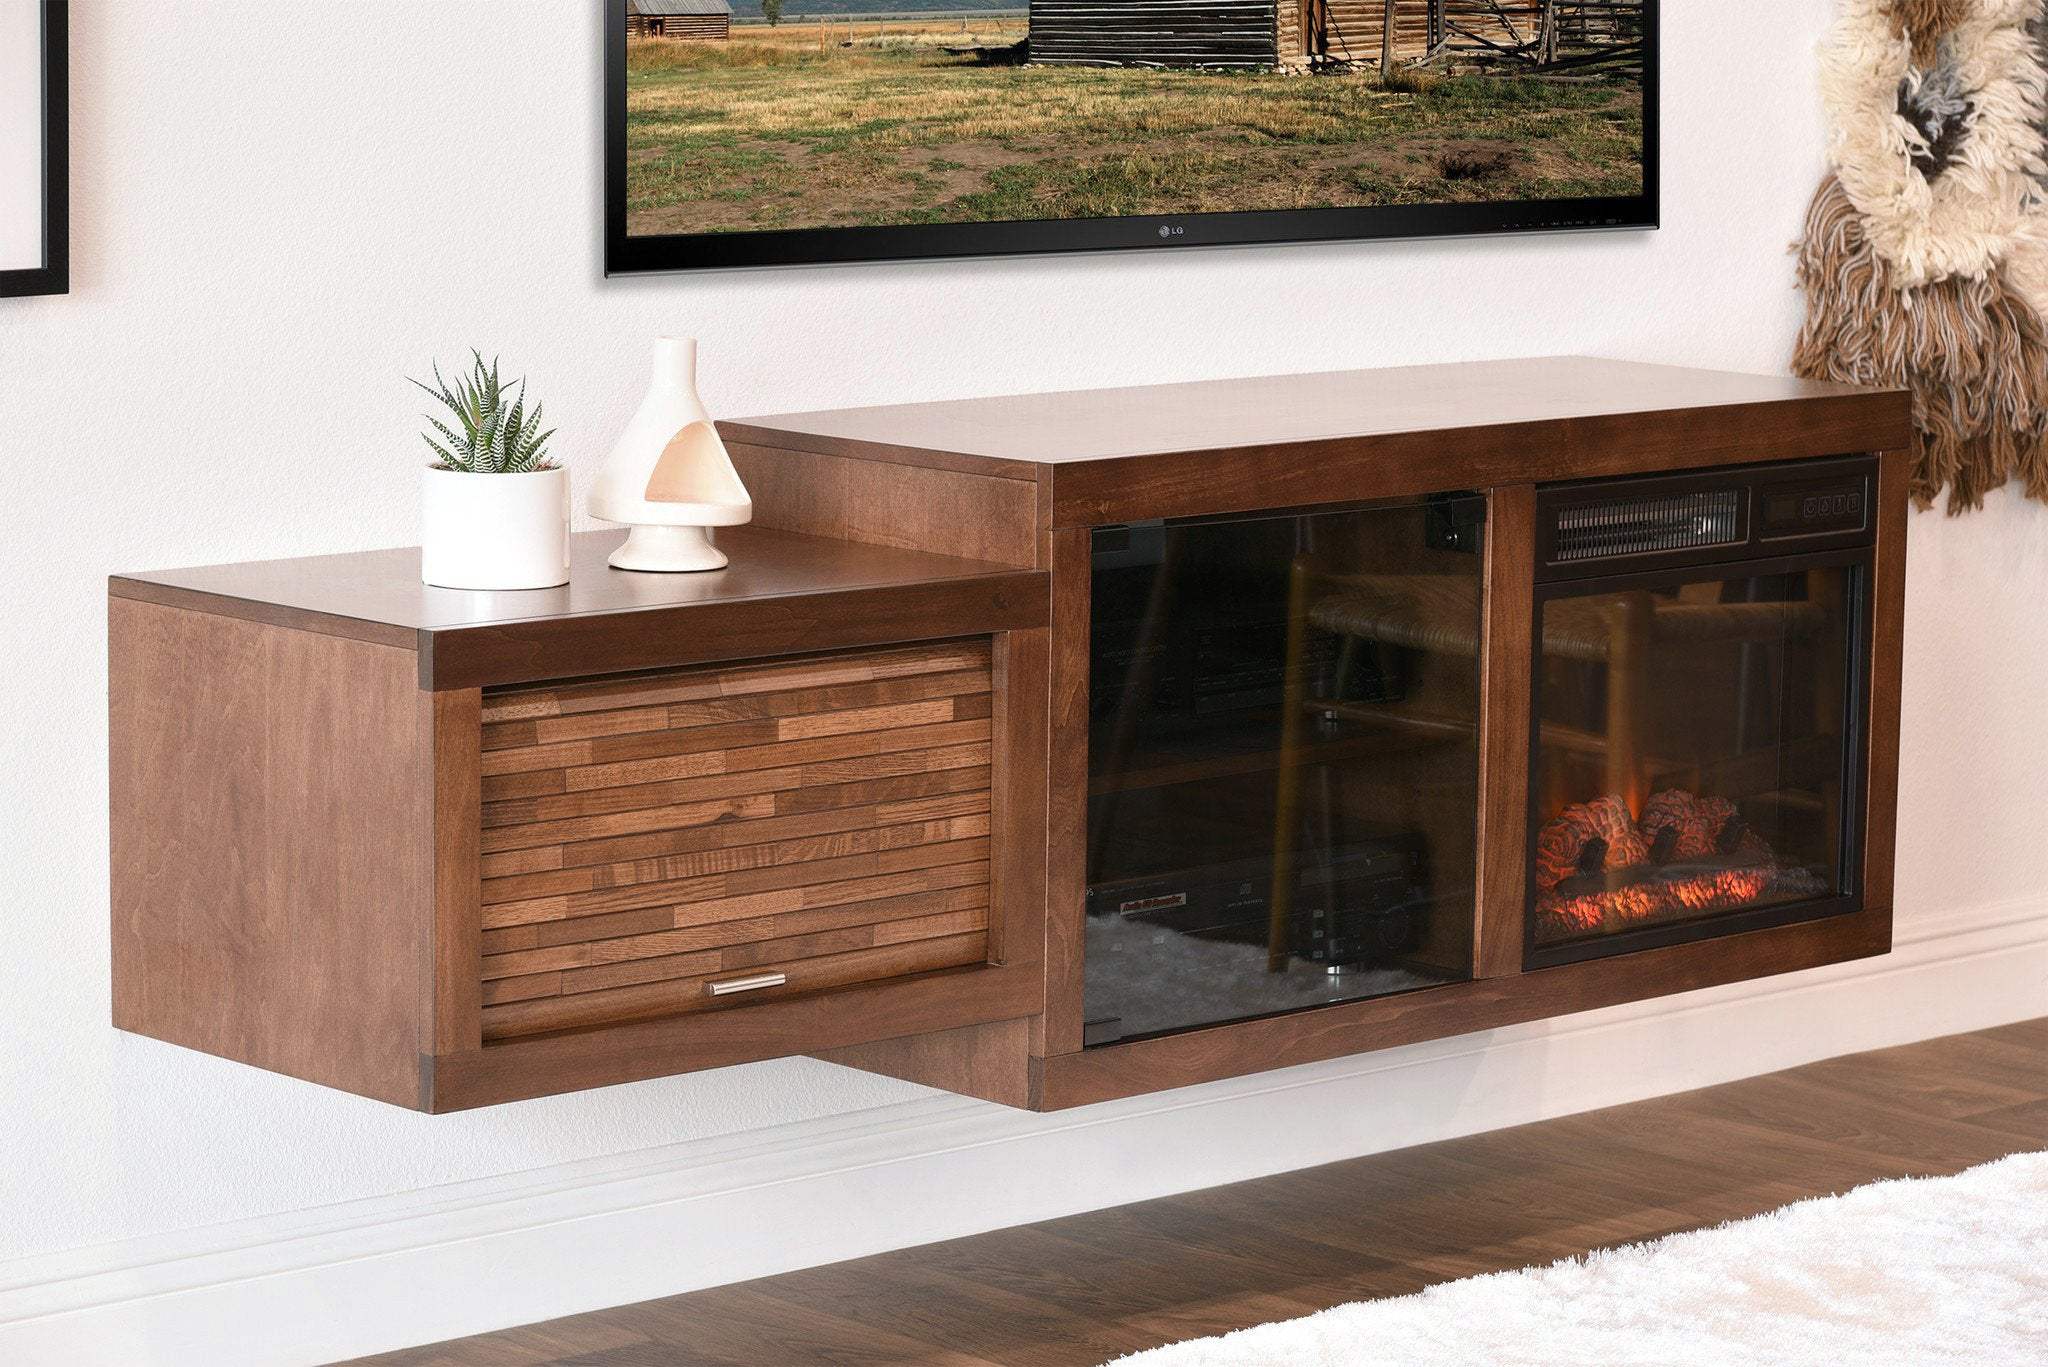 Danish Modern Fireplace Part - 48: Floating Mid Century Modern Fireplace TV Stand Console - ECO GEO Mocha